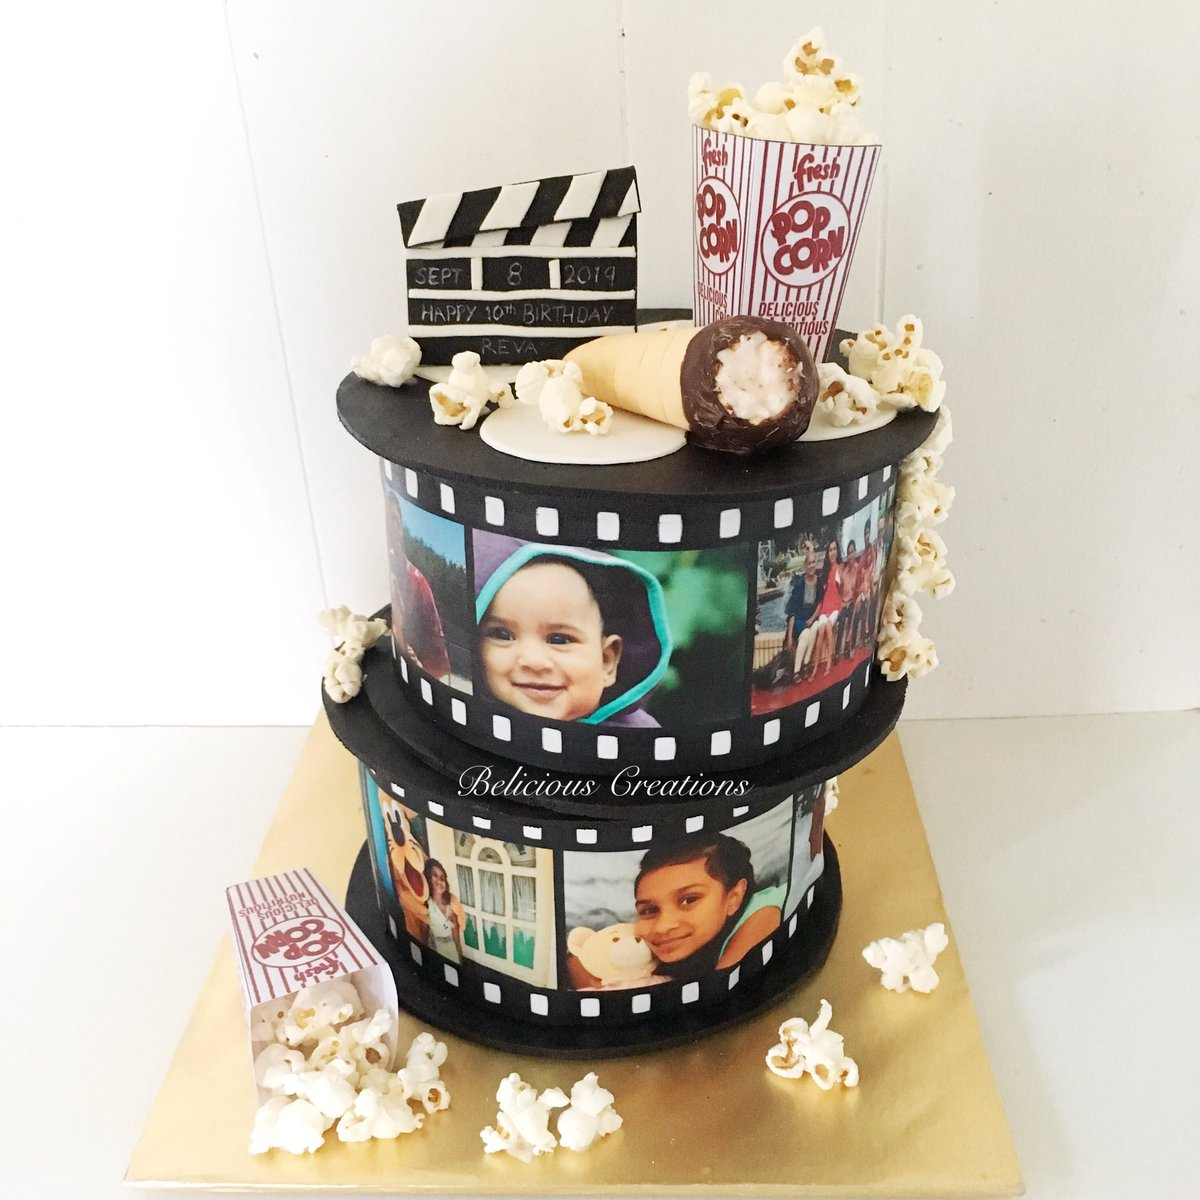 Surprising Belicious Creations On Twitter A Film Roll Themed Birthday Cake Funny Birthday Cards Online Alyptdamsfinfo